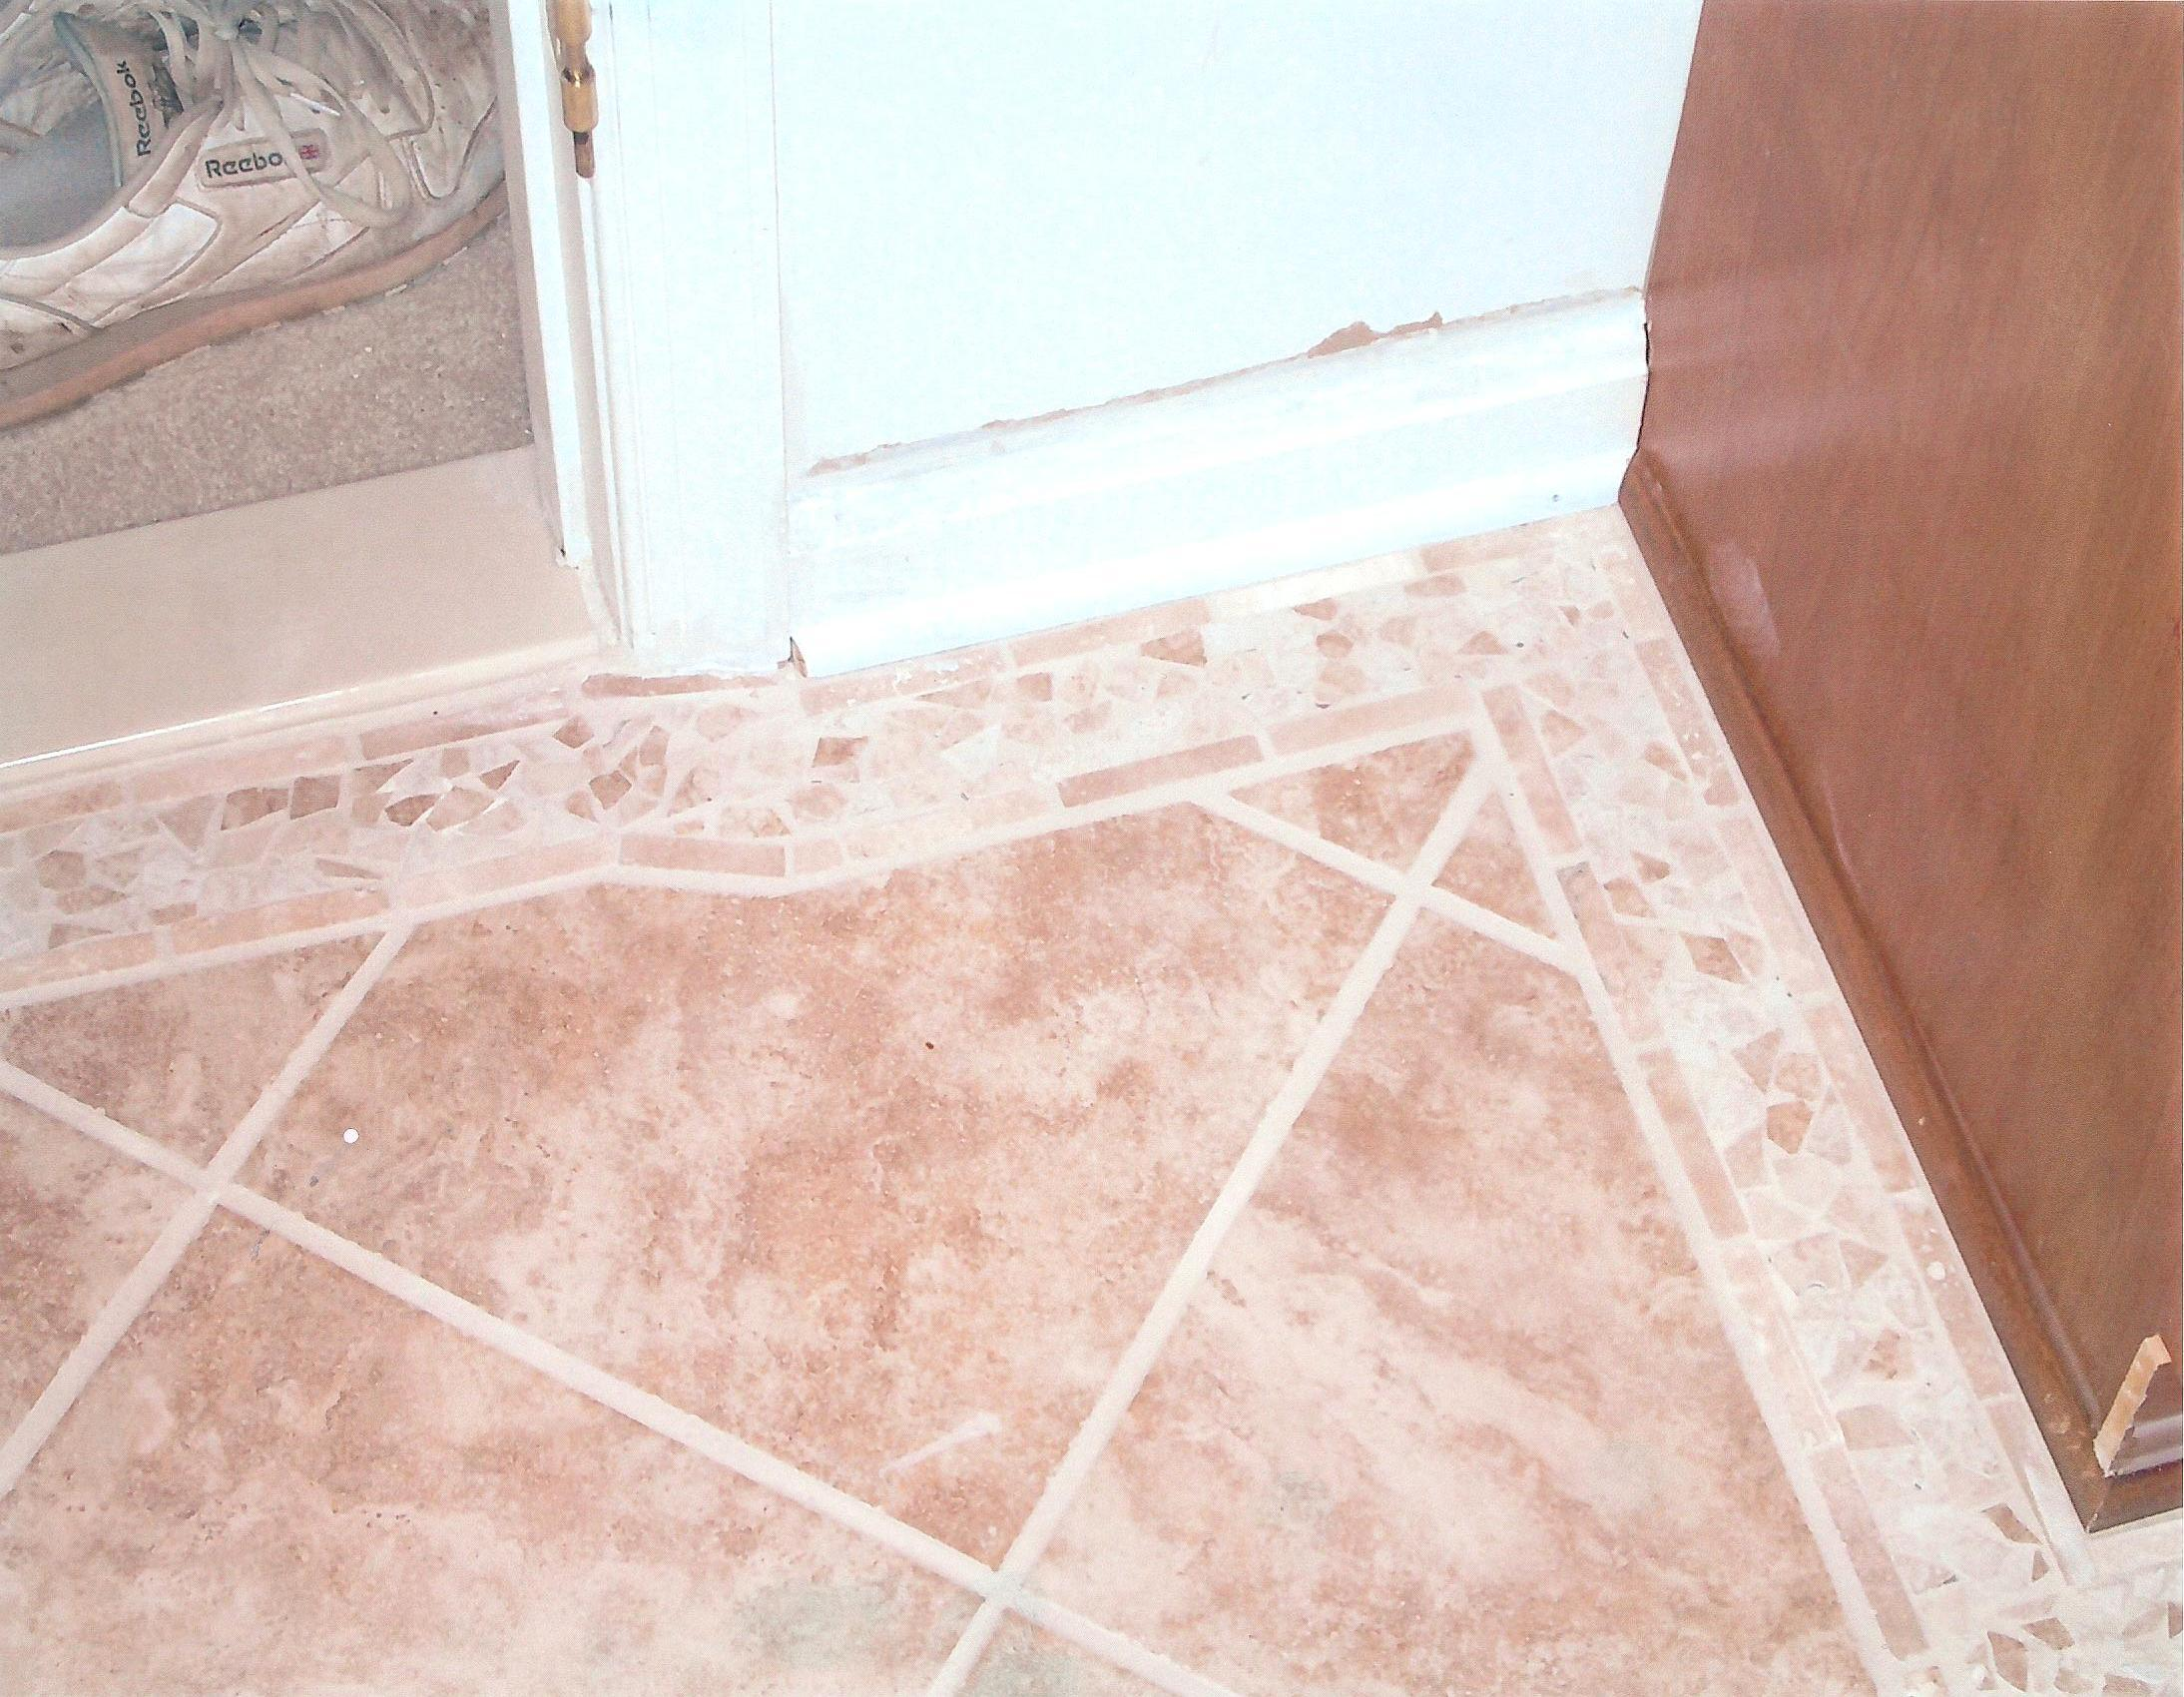 Ceramic natural stone porcelain glass tile sales installation floor on a diagonal with border dailygadgetfo Choice Image